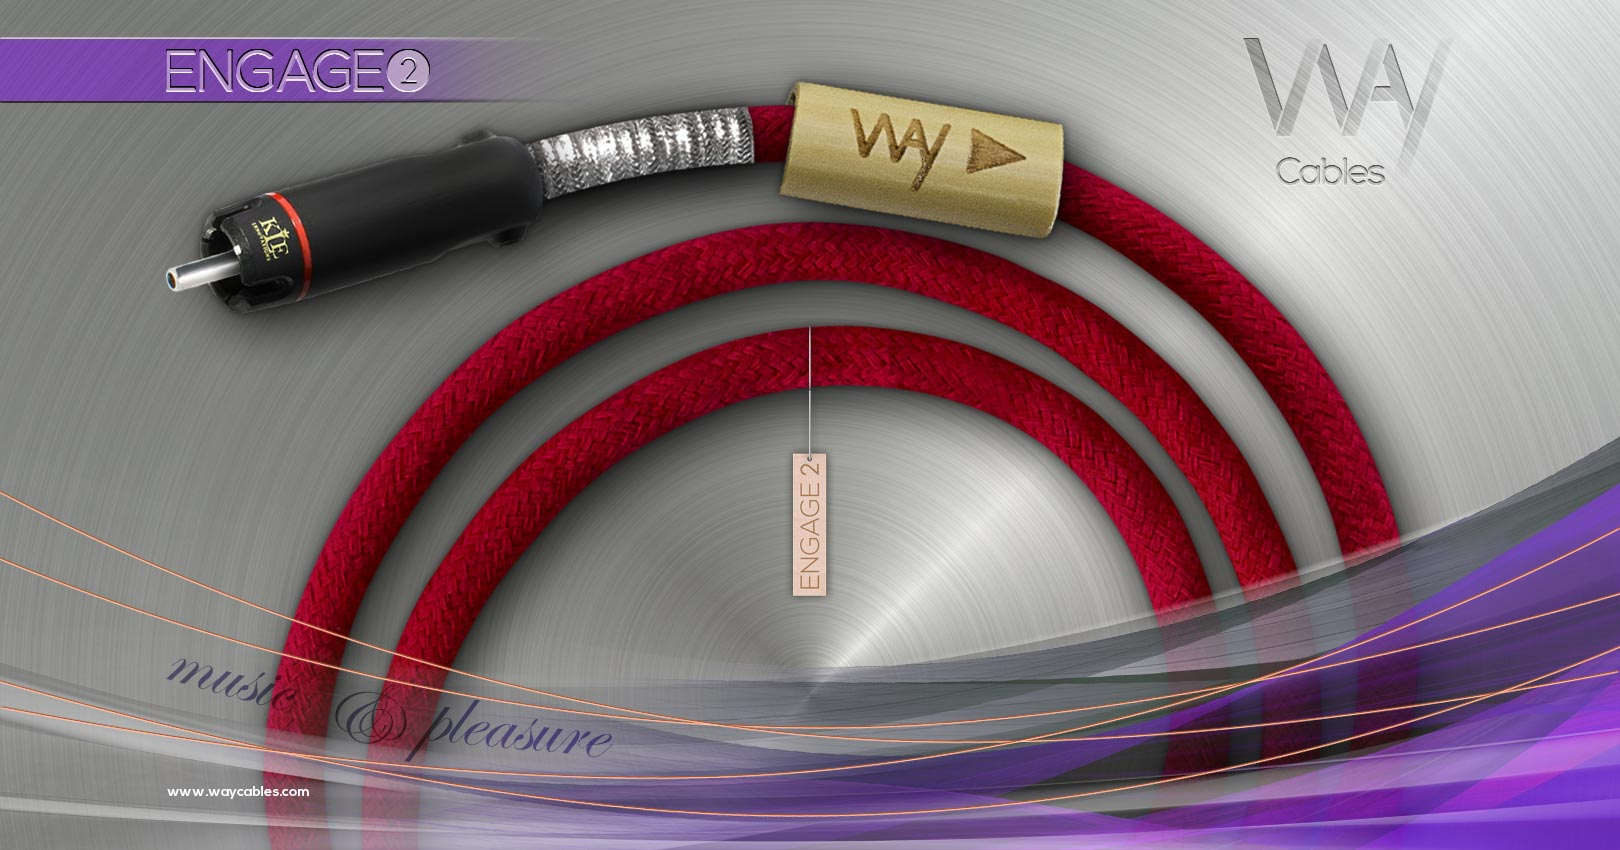 1.1_WAY_Cables-ENGAGE-2-interconnect-RCA-KLEI-red-1